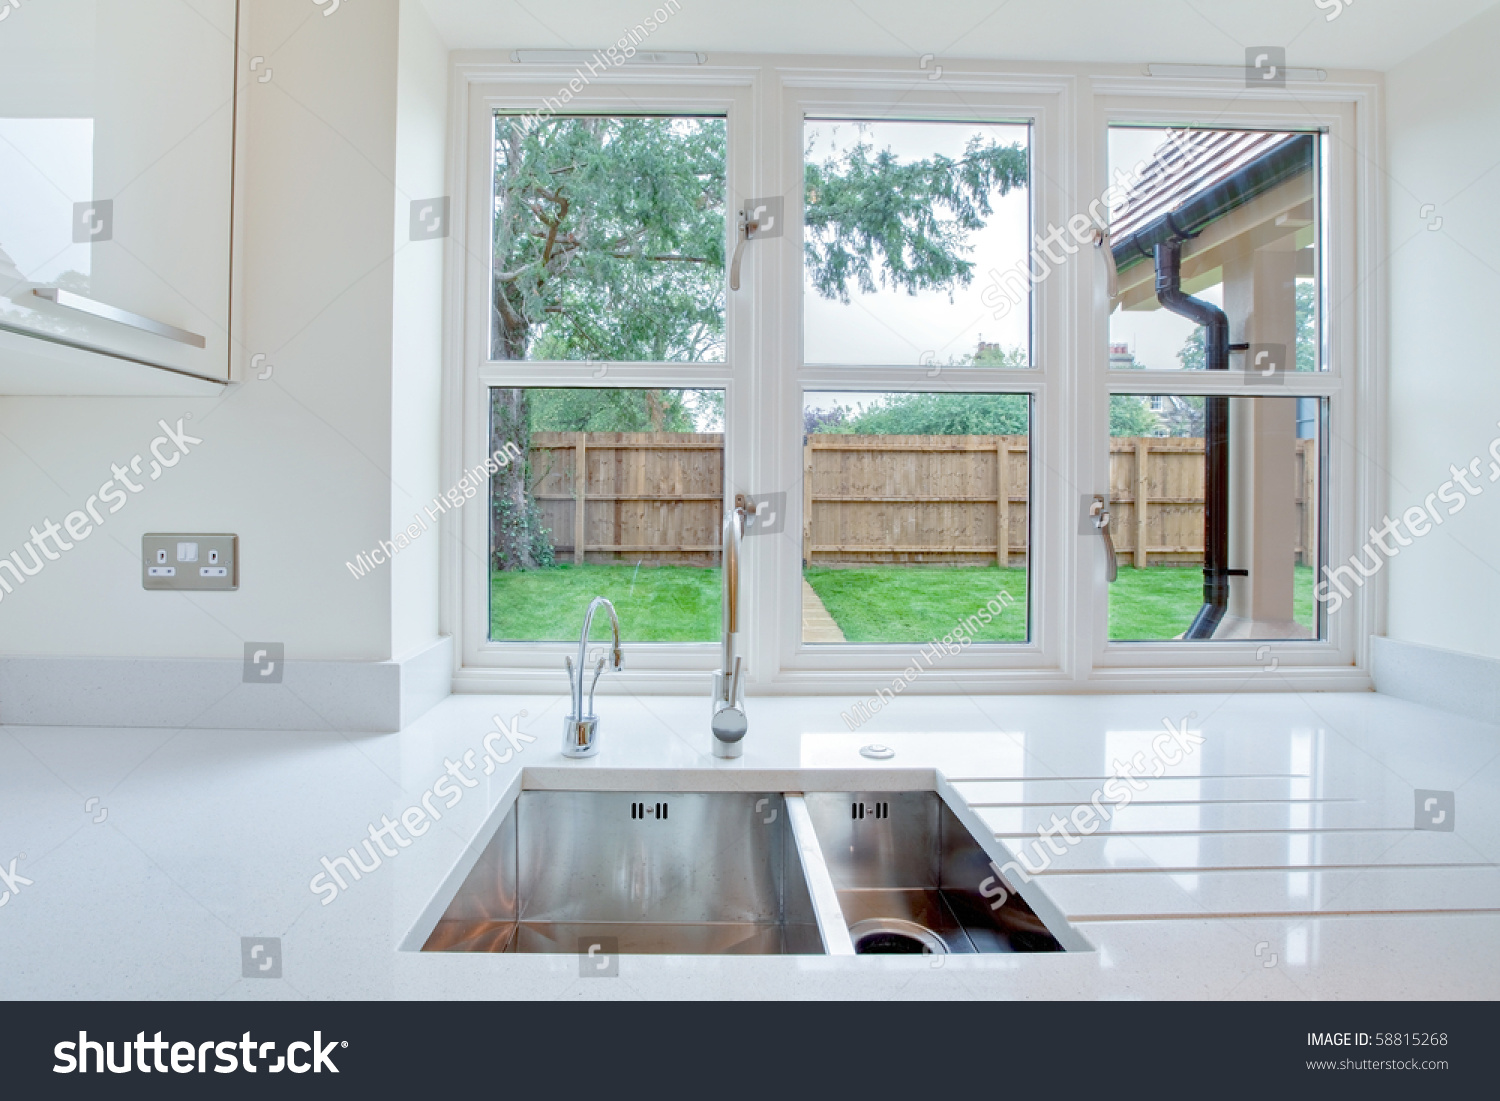 Garden Kitchen Windows Window View Overlooking Garden Kitchen Sink Stock Photo 58815268